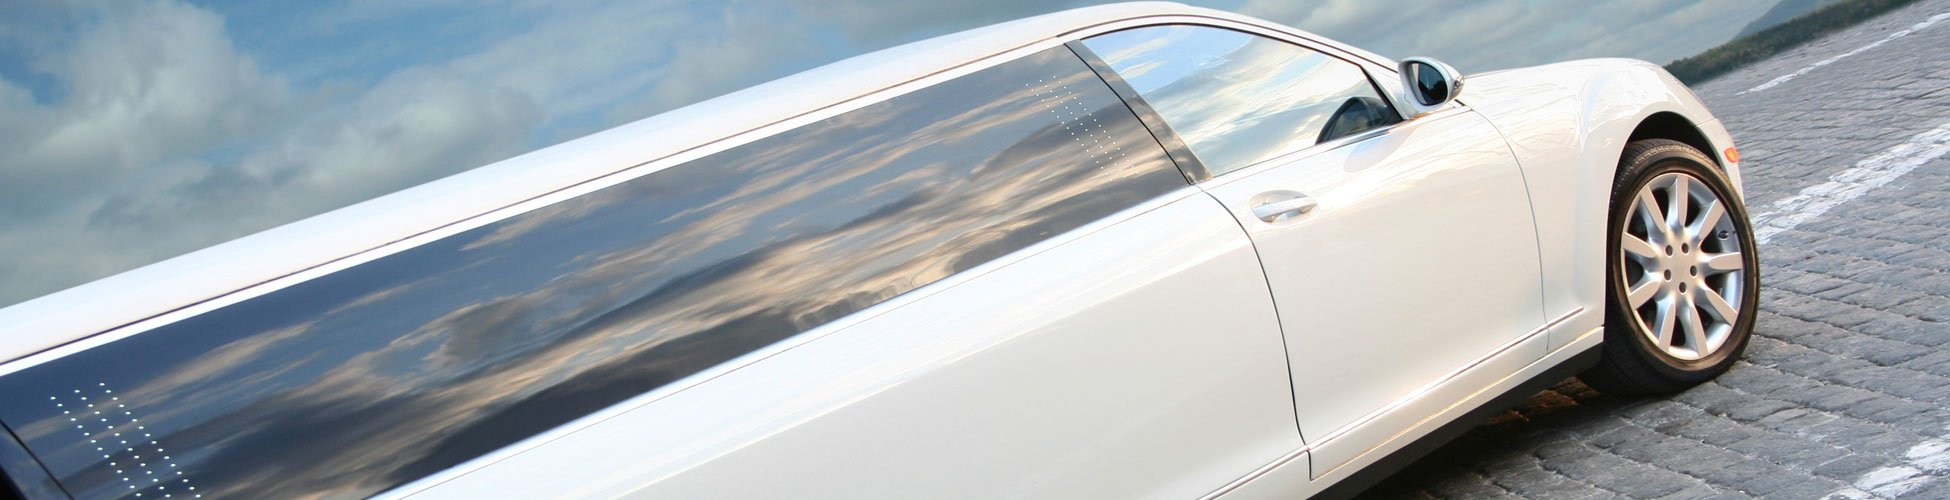 limousines banner photo - Home ENG